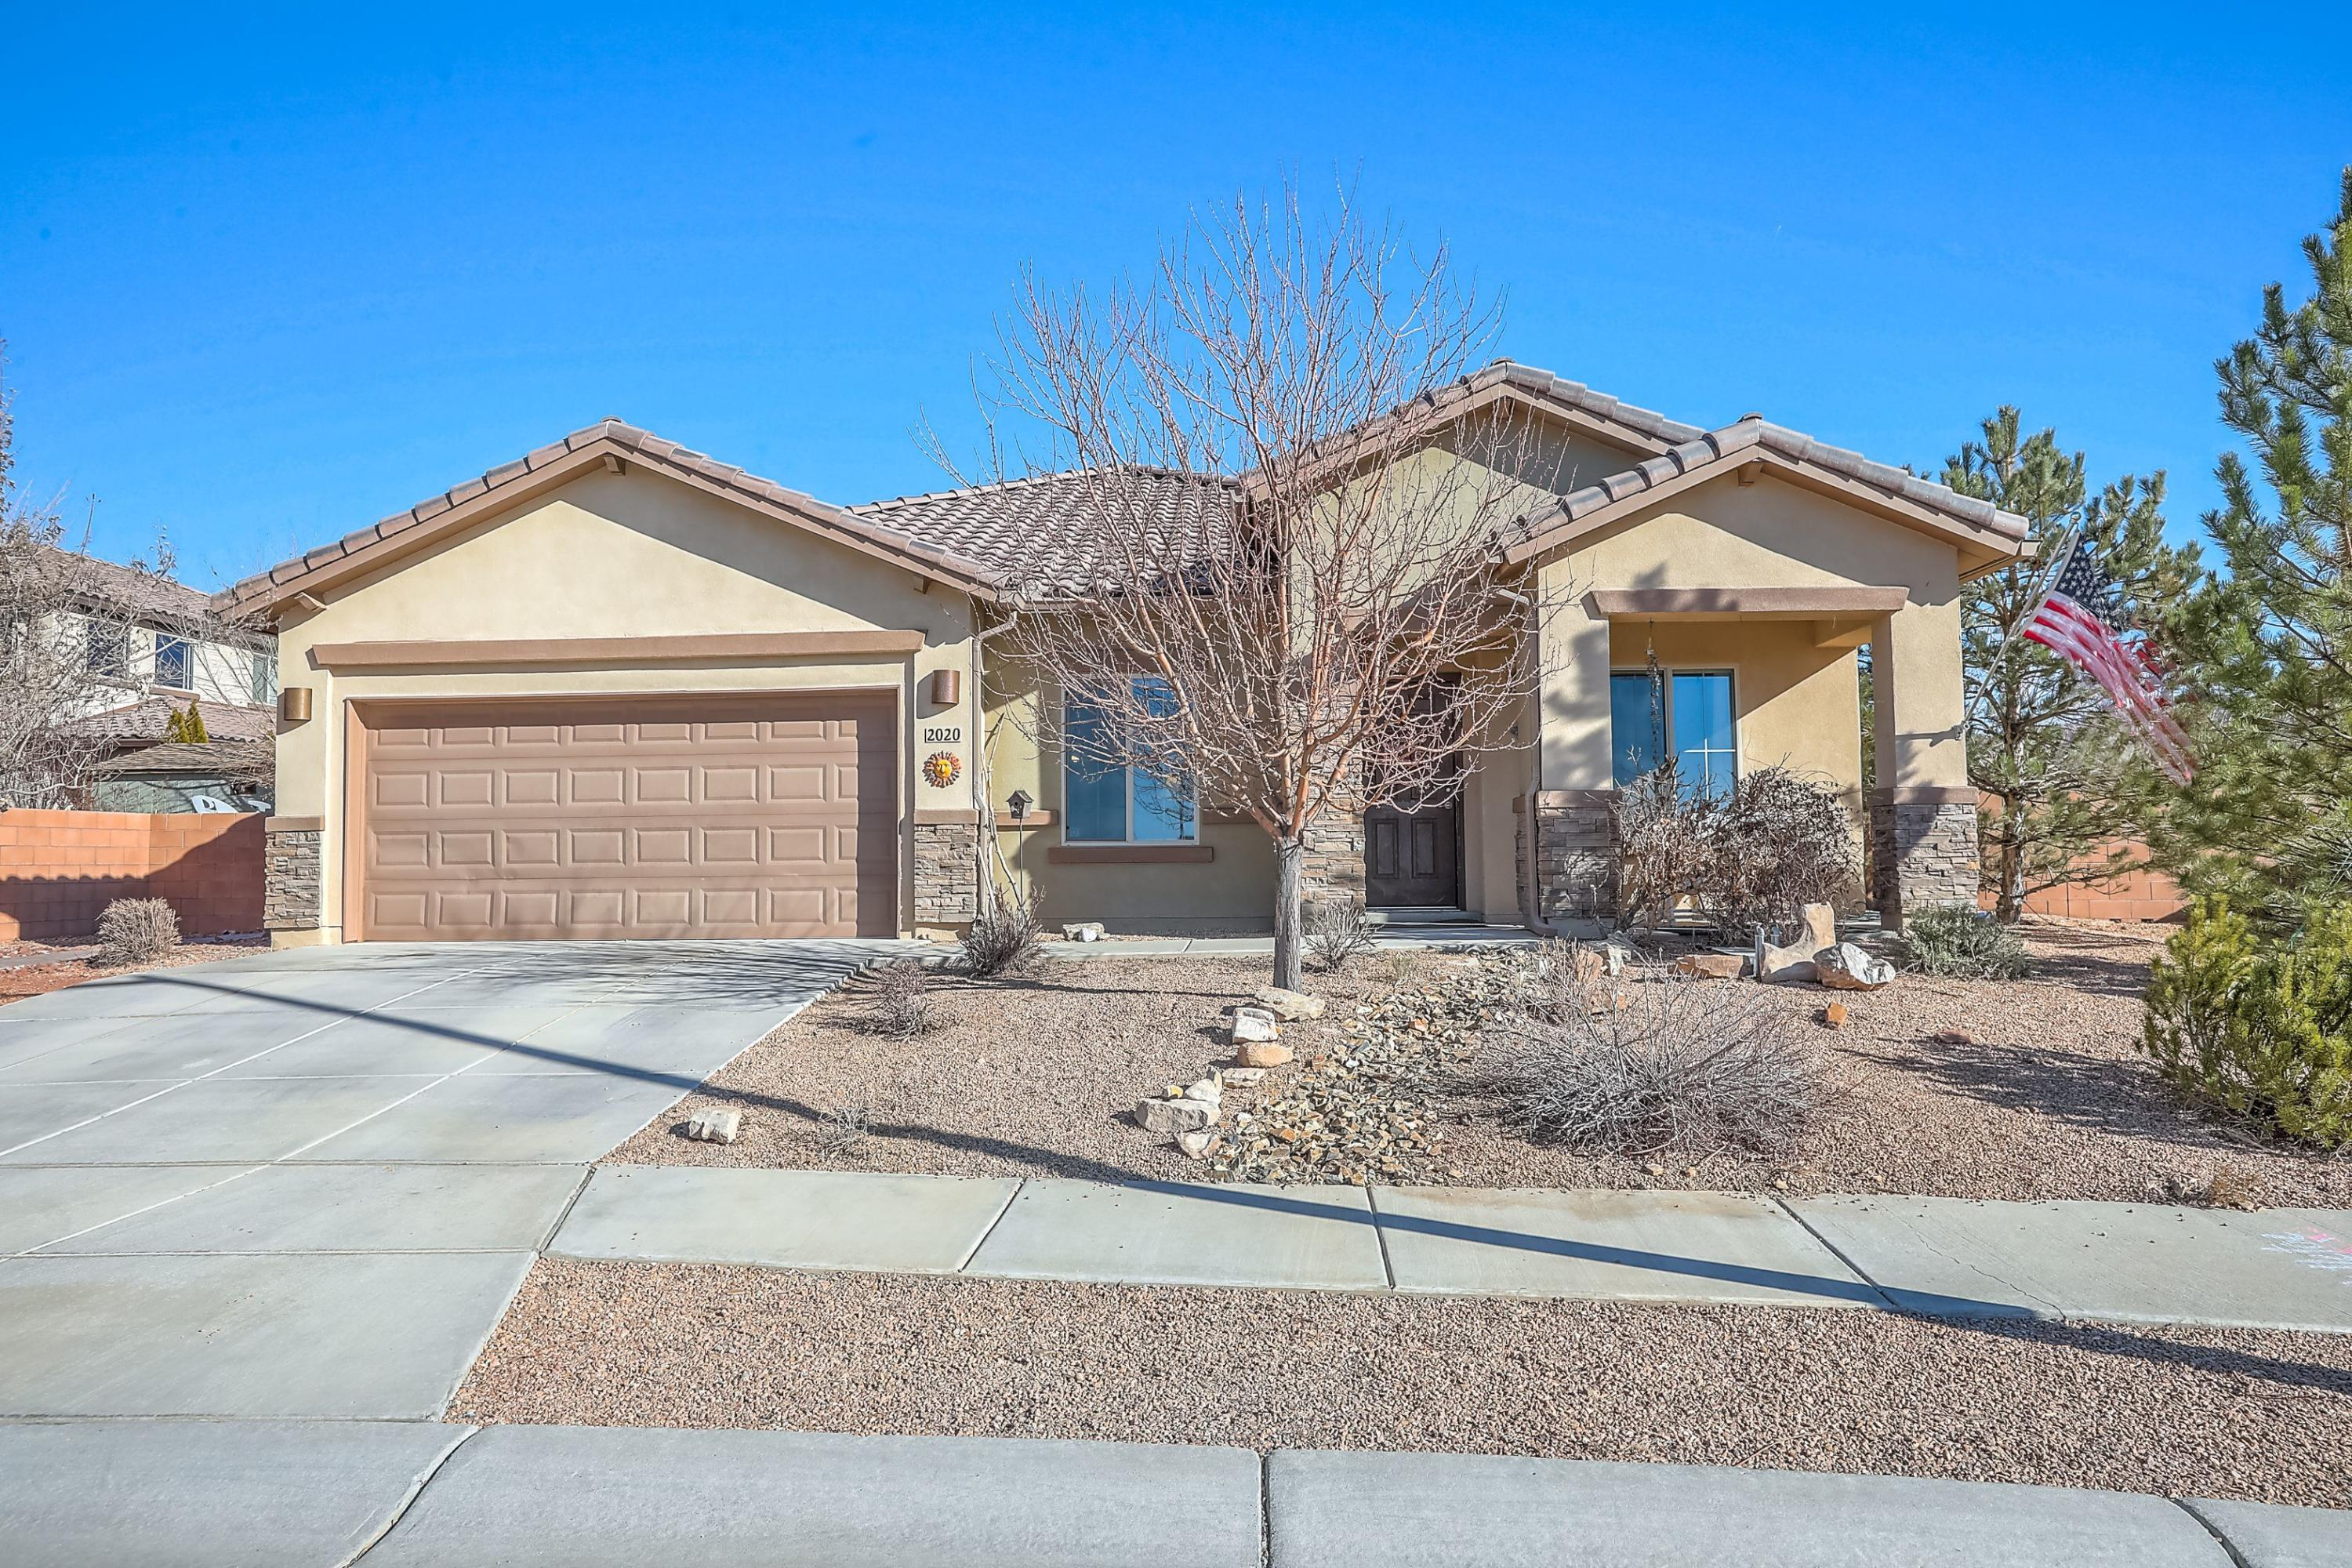 Don't miss the Beautiful SINGLE  STORY home. Situated close to the Air Force Base & Sandia Labs. Home has an Open, Light & Bright Floor Plan. NEWLY PAINTED! This homes sits on a corner lot, providing extra space for outdoor living.  Large  kitchen with Granite Countertops open to large dining area & 2 pantries.. Living room with a gas burning Fireplace. Home also has a Formal dining area (alternative use as a music room) Home has 4 bedrooms plus a study to have your 5th bedroom.   Guest Bath with 2 sinks. Large walk-in closets. Oversized master, on suite with  Garden tub & separate shower & double sinks. . (Seller has patio doors that do not have doggie door to be installed) This home has Taexx Pest Defense.